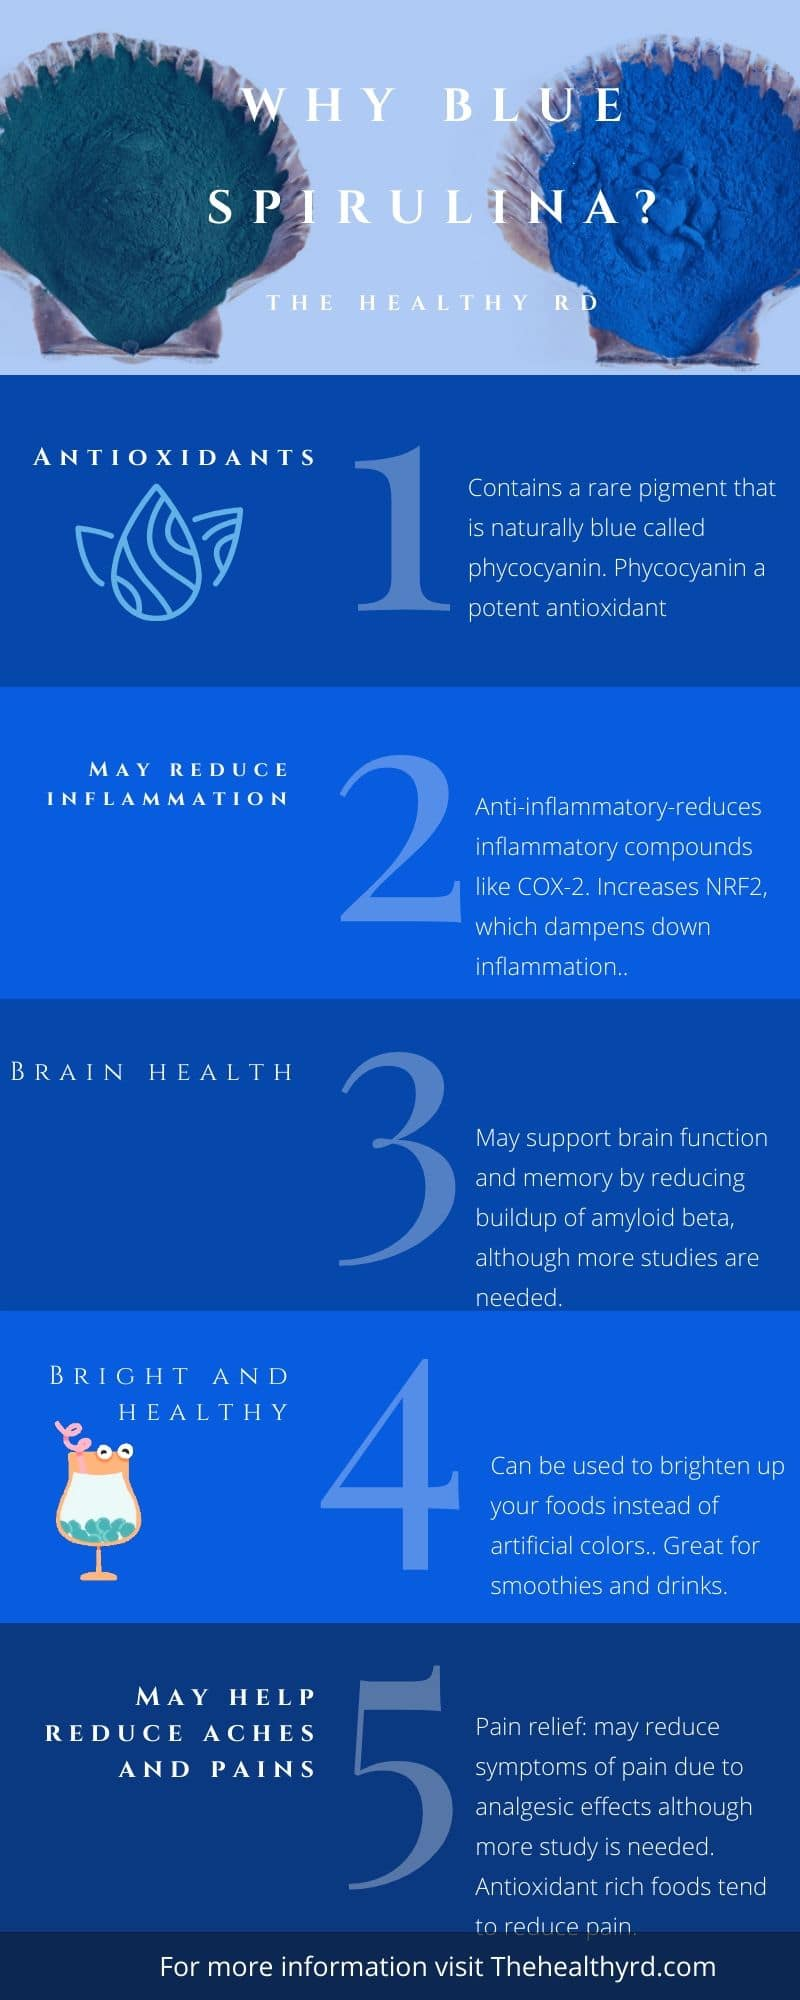 Blue Spirulina Infographic by The Healthy RD